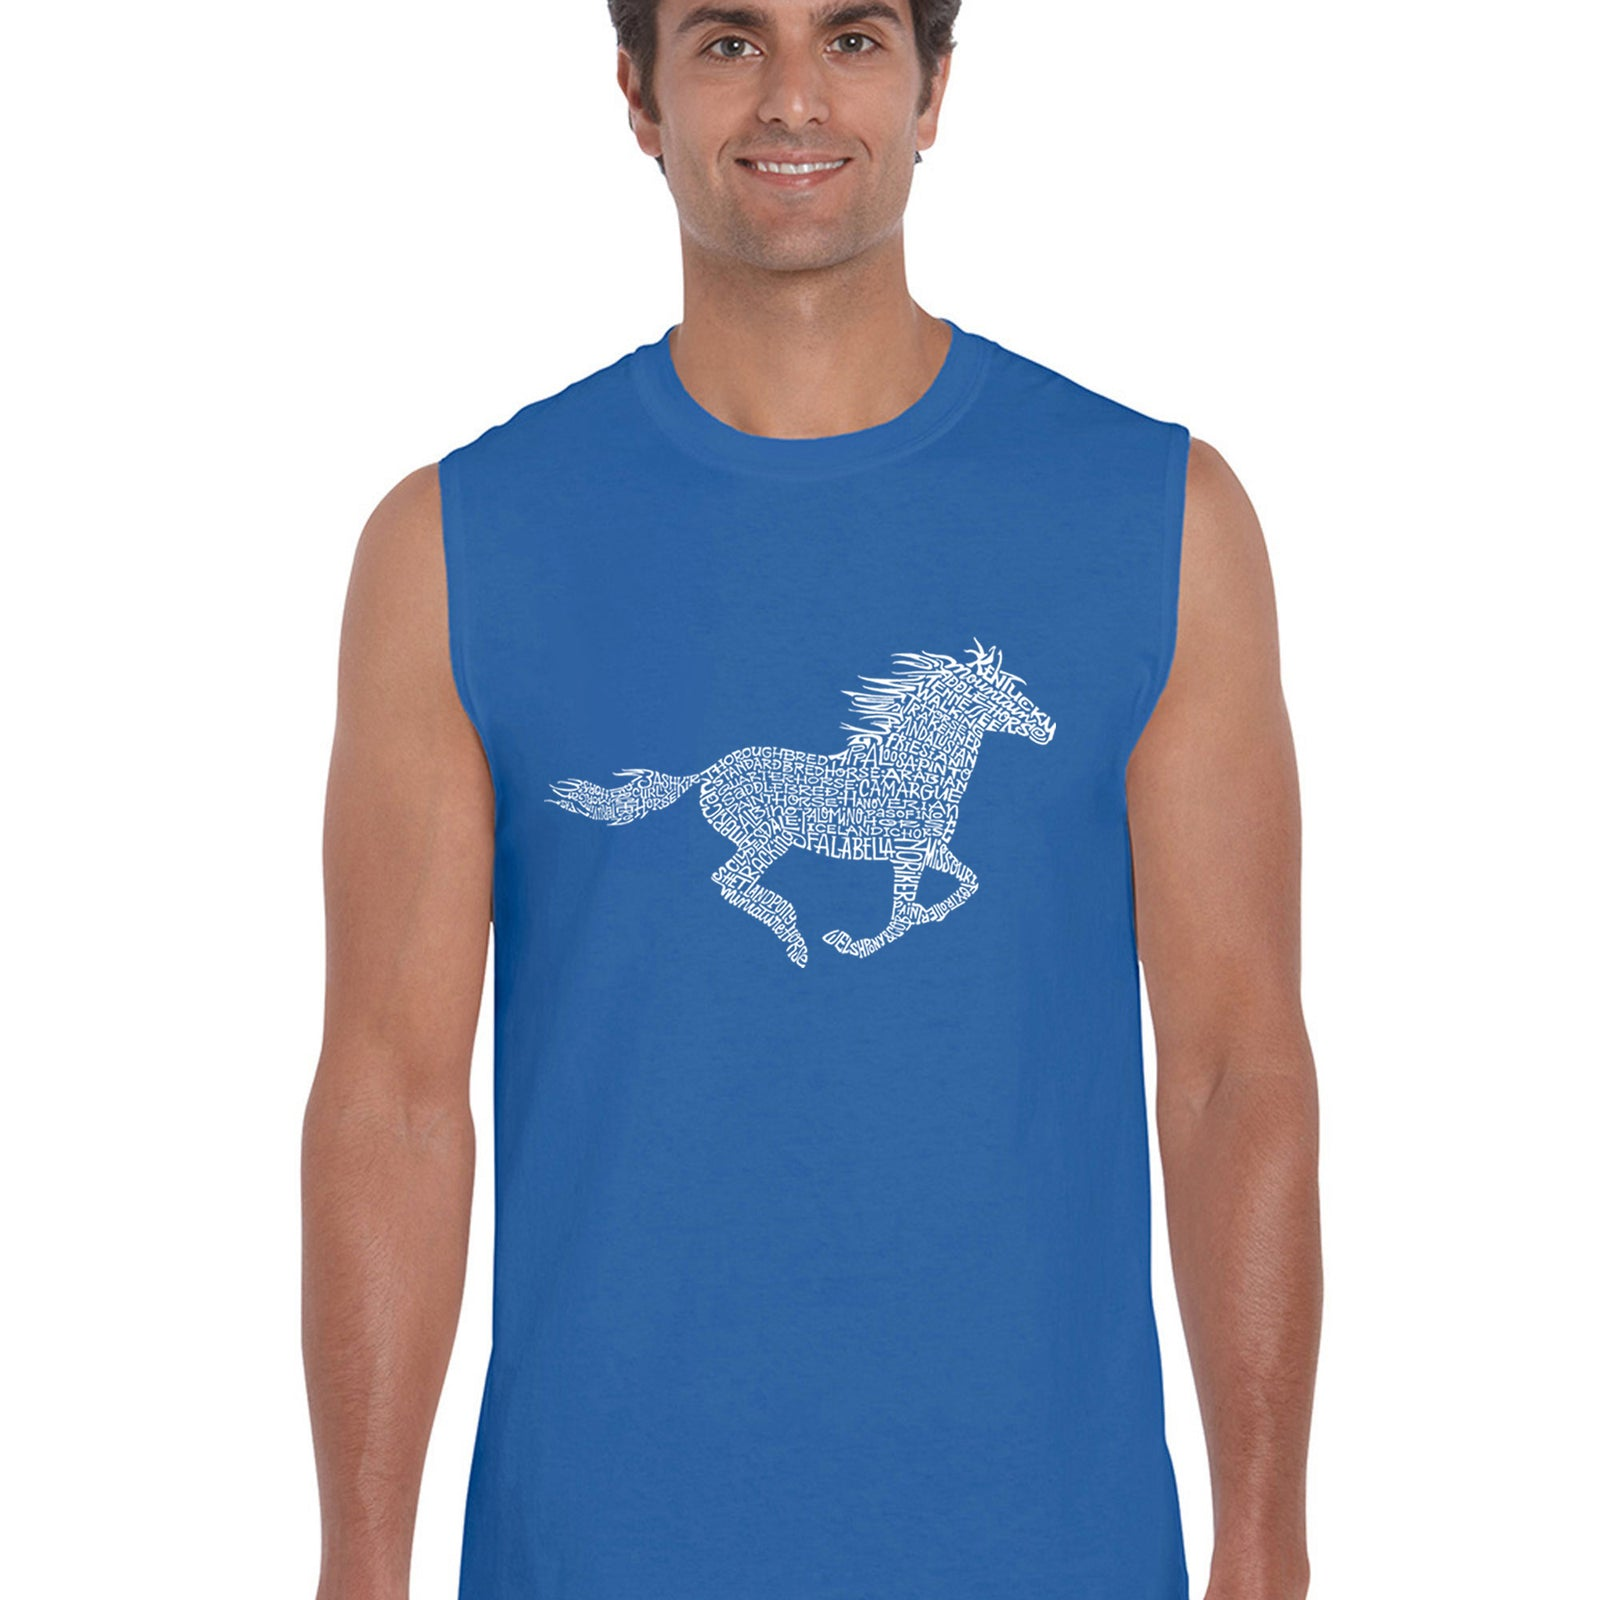 Men's Word Art Sleeveless T-shirt - Horse Breeds